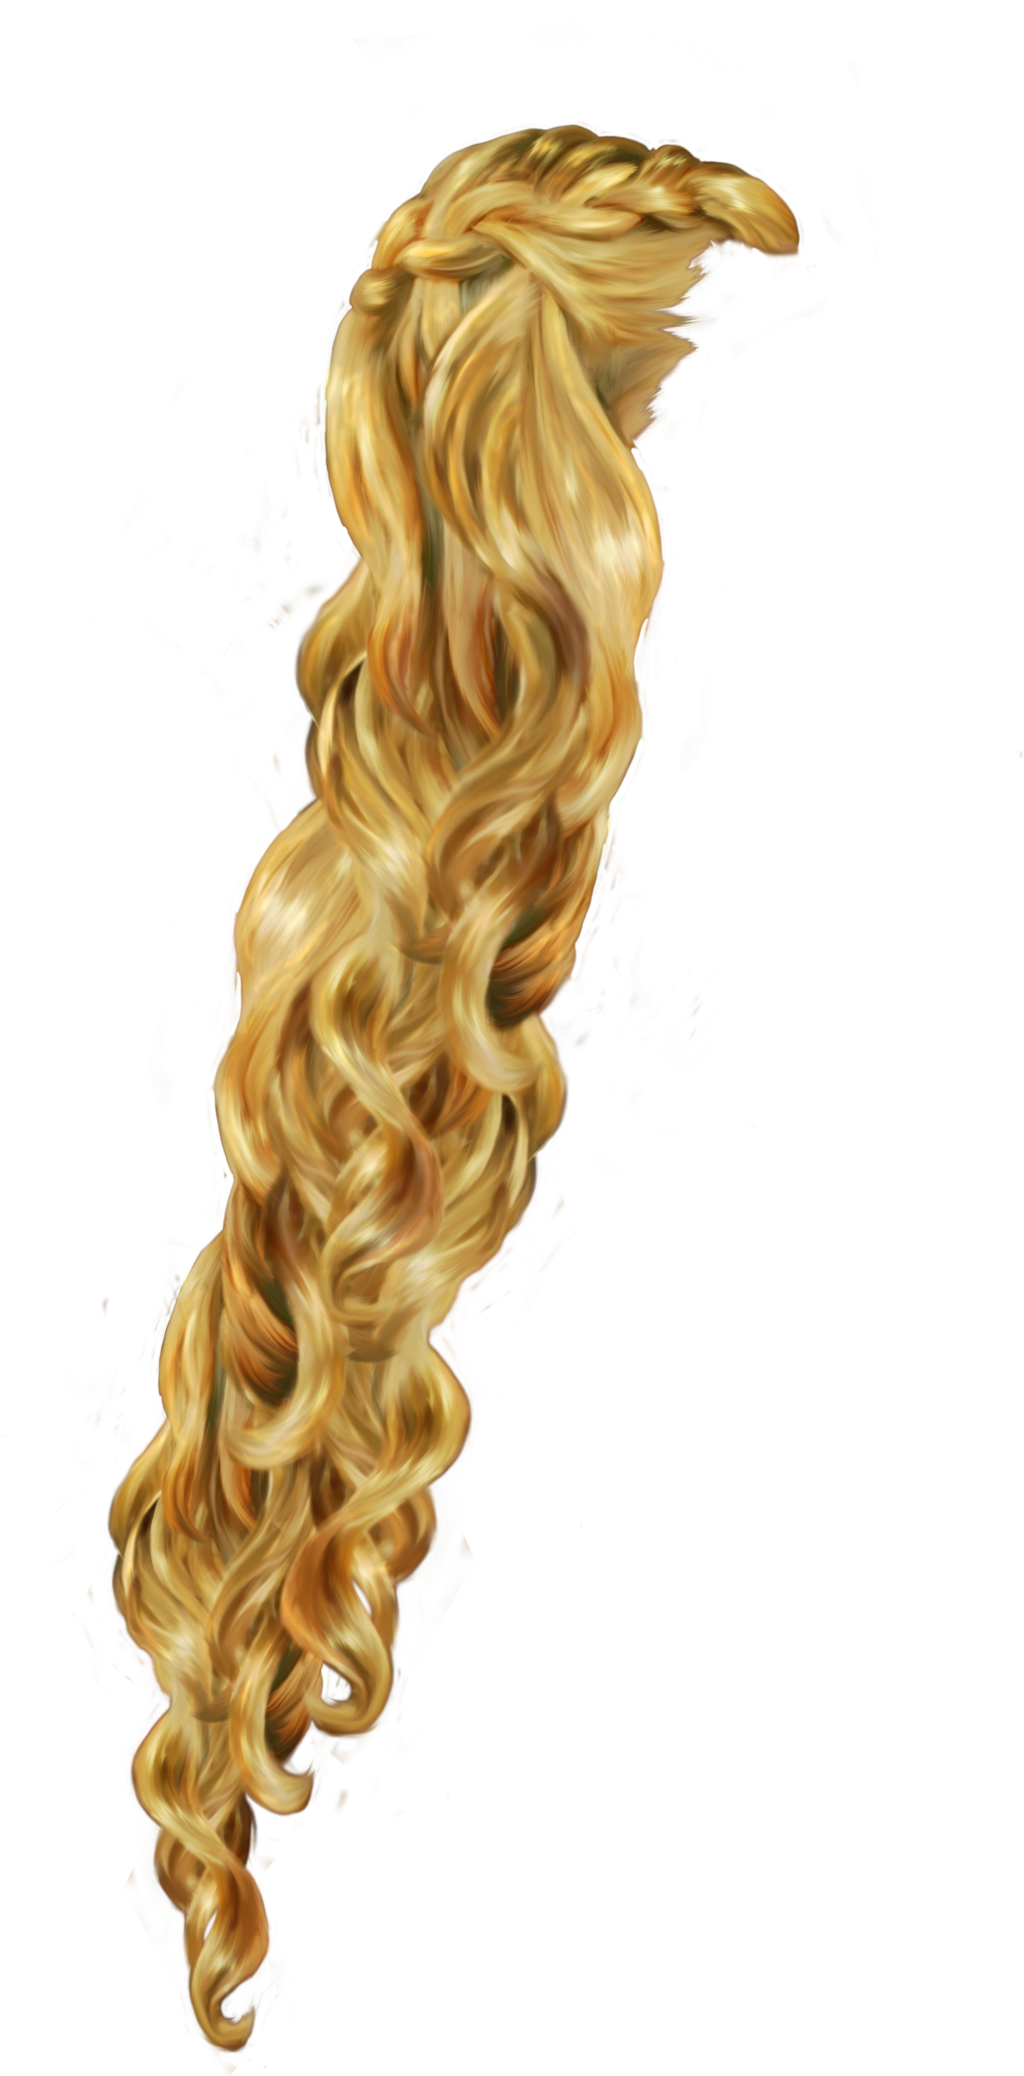 Hair clipart rapunzel On by 649 by